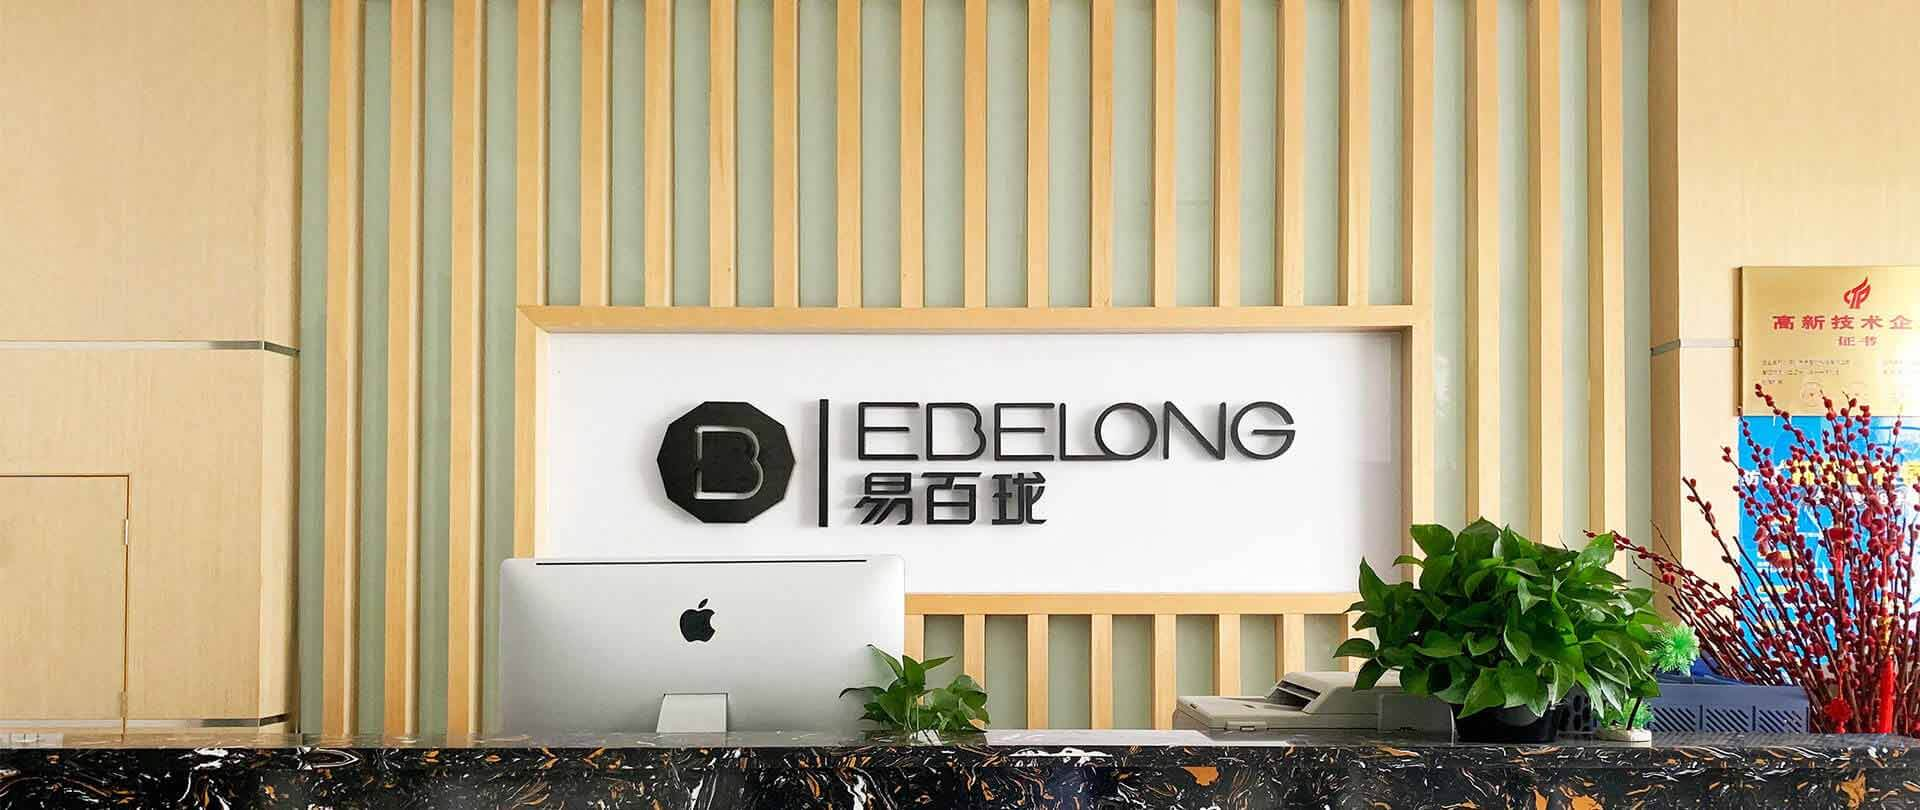 Ebelong Concentrates On Energy Harvesting And Smart Building Devices